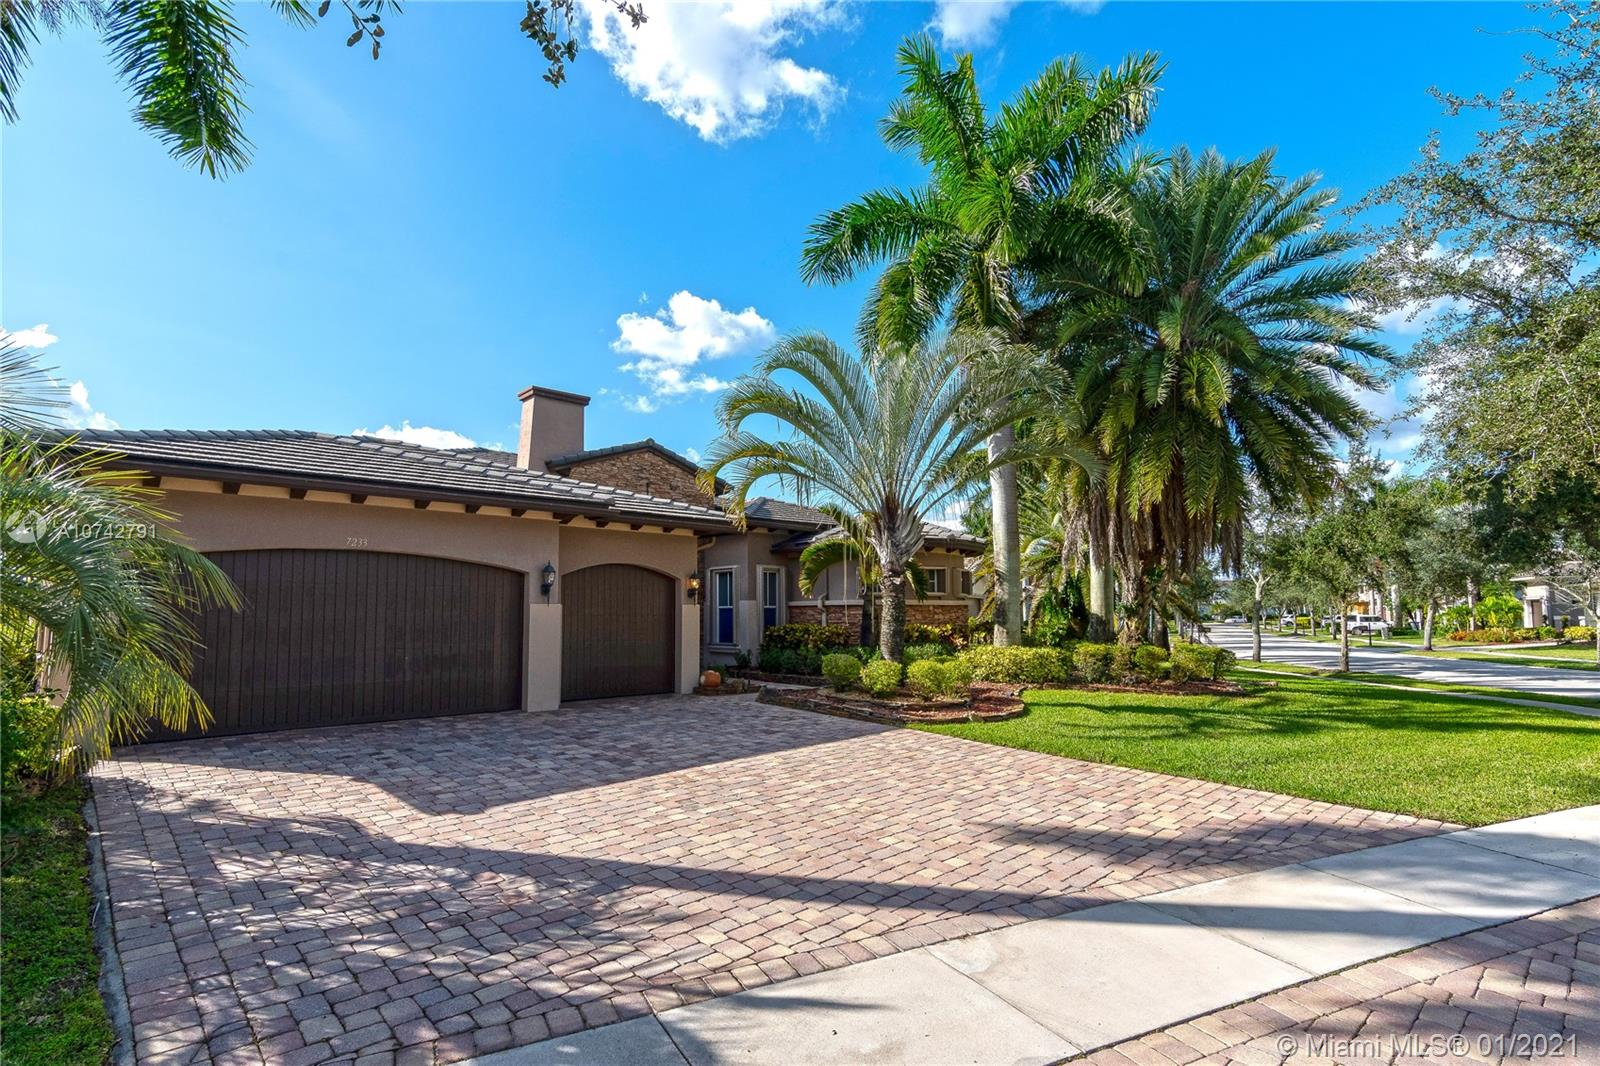 Welcome to the Home of your dreams, located in Parkland, where its excellent schools are unleashed in addition to its beautiful and cozy association. Spacious property with masterful structure, 5/3 rooms, highlighting its modern kitchen recently remodeled, in addition to a captivating terrace where you can enjoy its beautiful pool overlooking the golf course and facing the lake discovering the sunrise with its typical Sunrise and at finish a relaxing sunset every day.